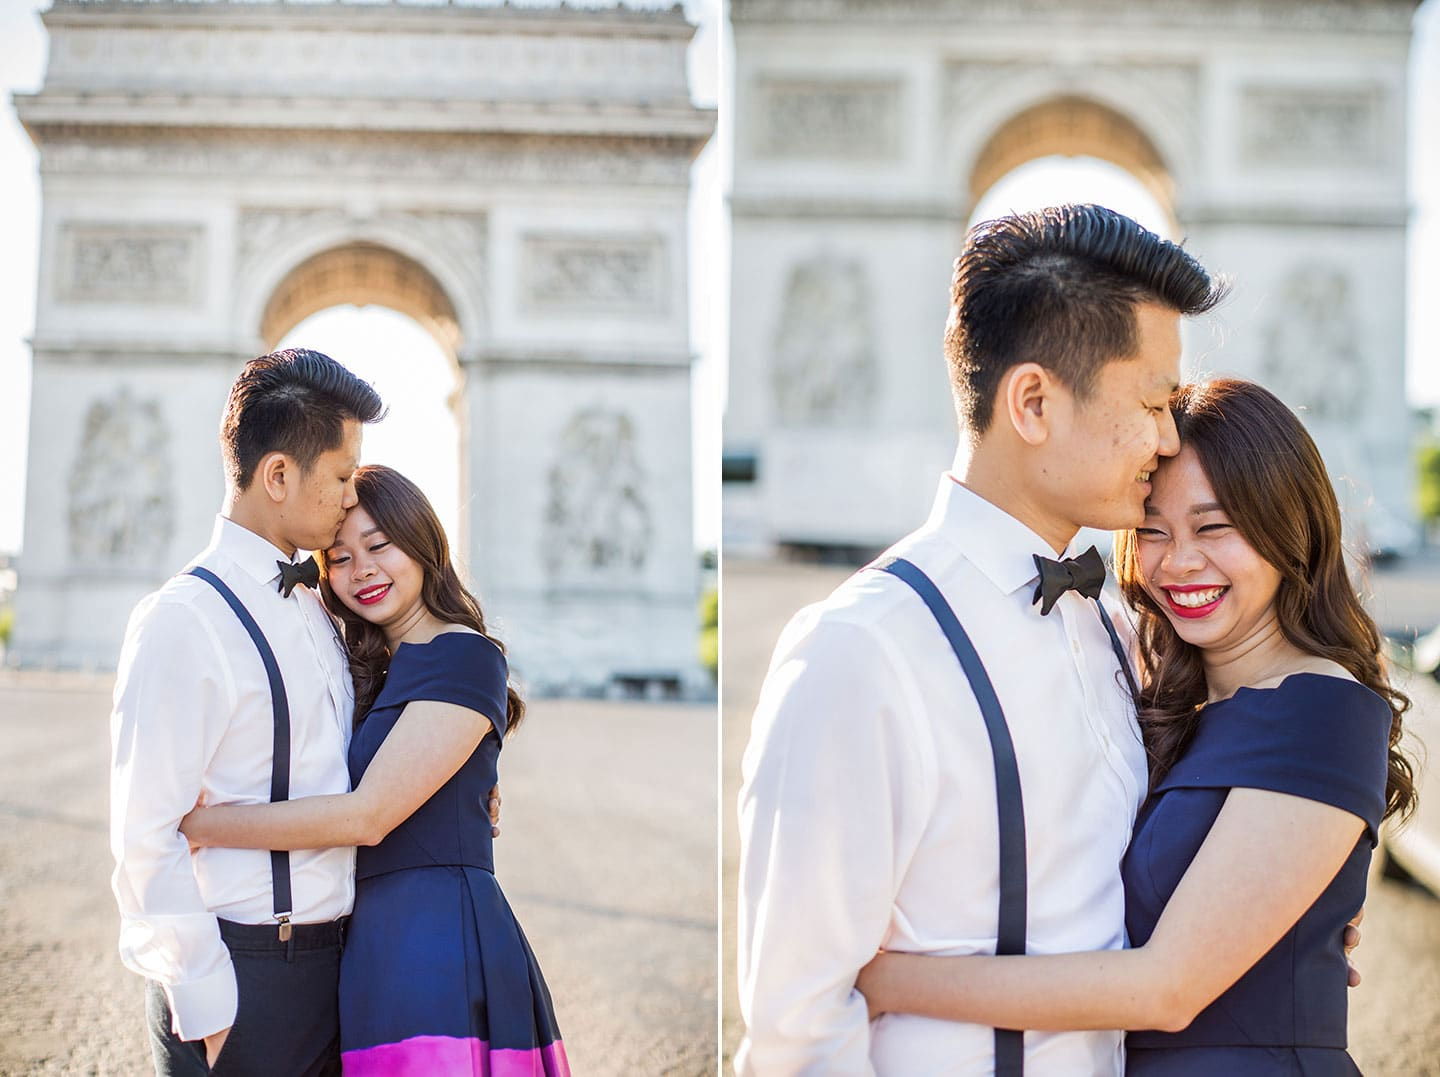 Pre wedding photoshoot in Paris, France